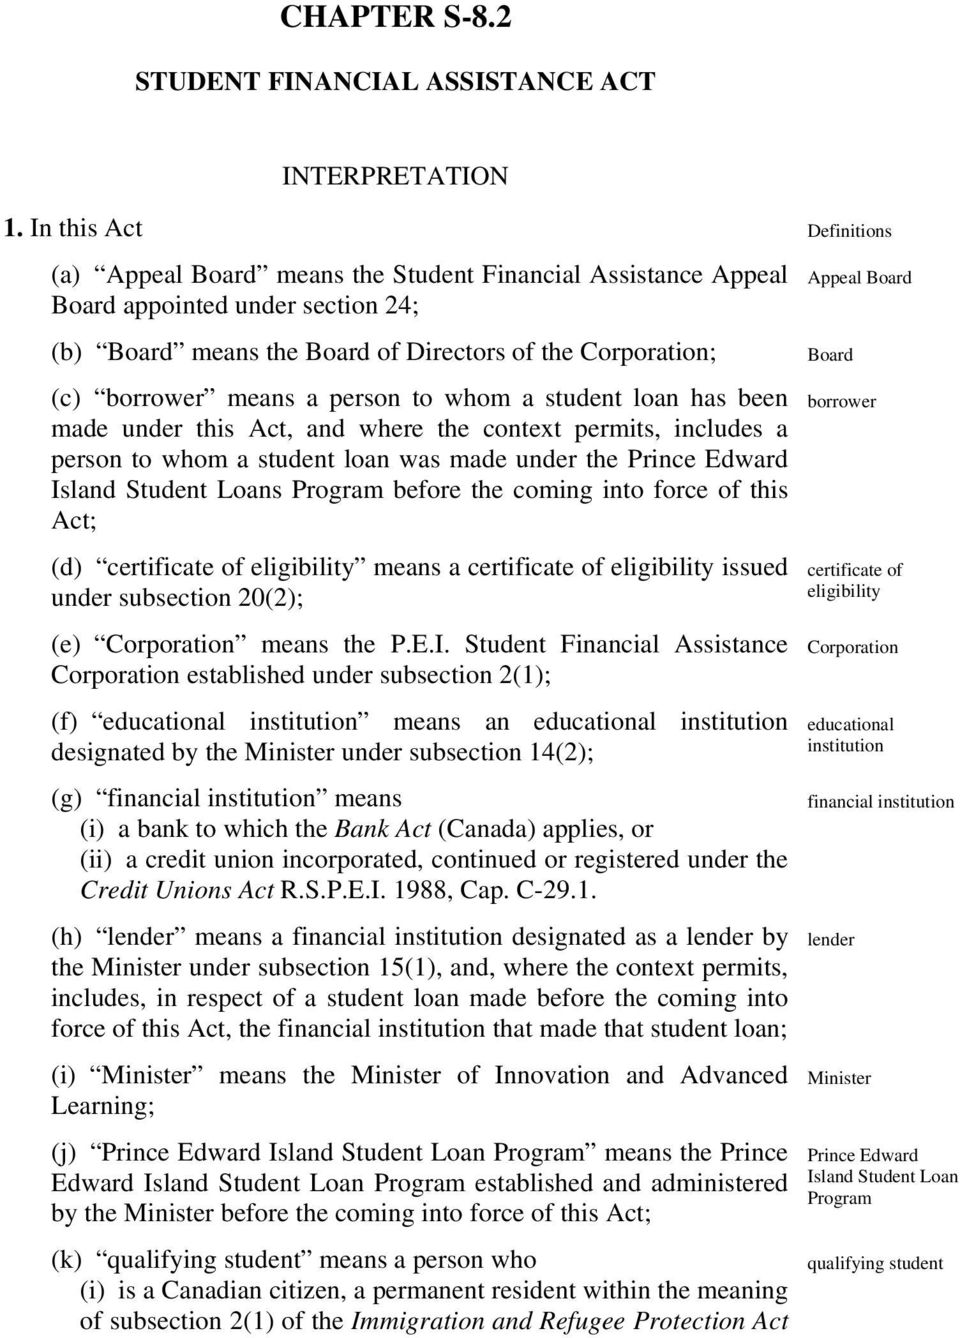 whom a student loan has been made under this Act, and where the context permits, includes a person to whom a student loan was made under the Prince Edward Island Student Loans Program before the